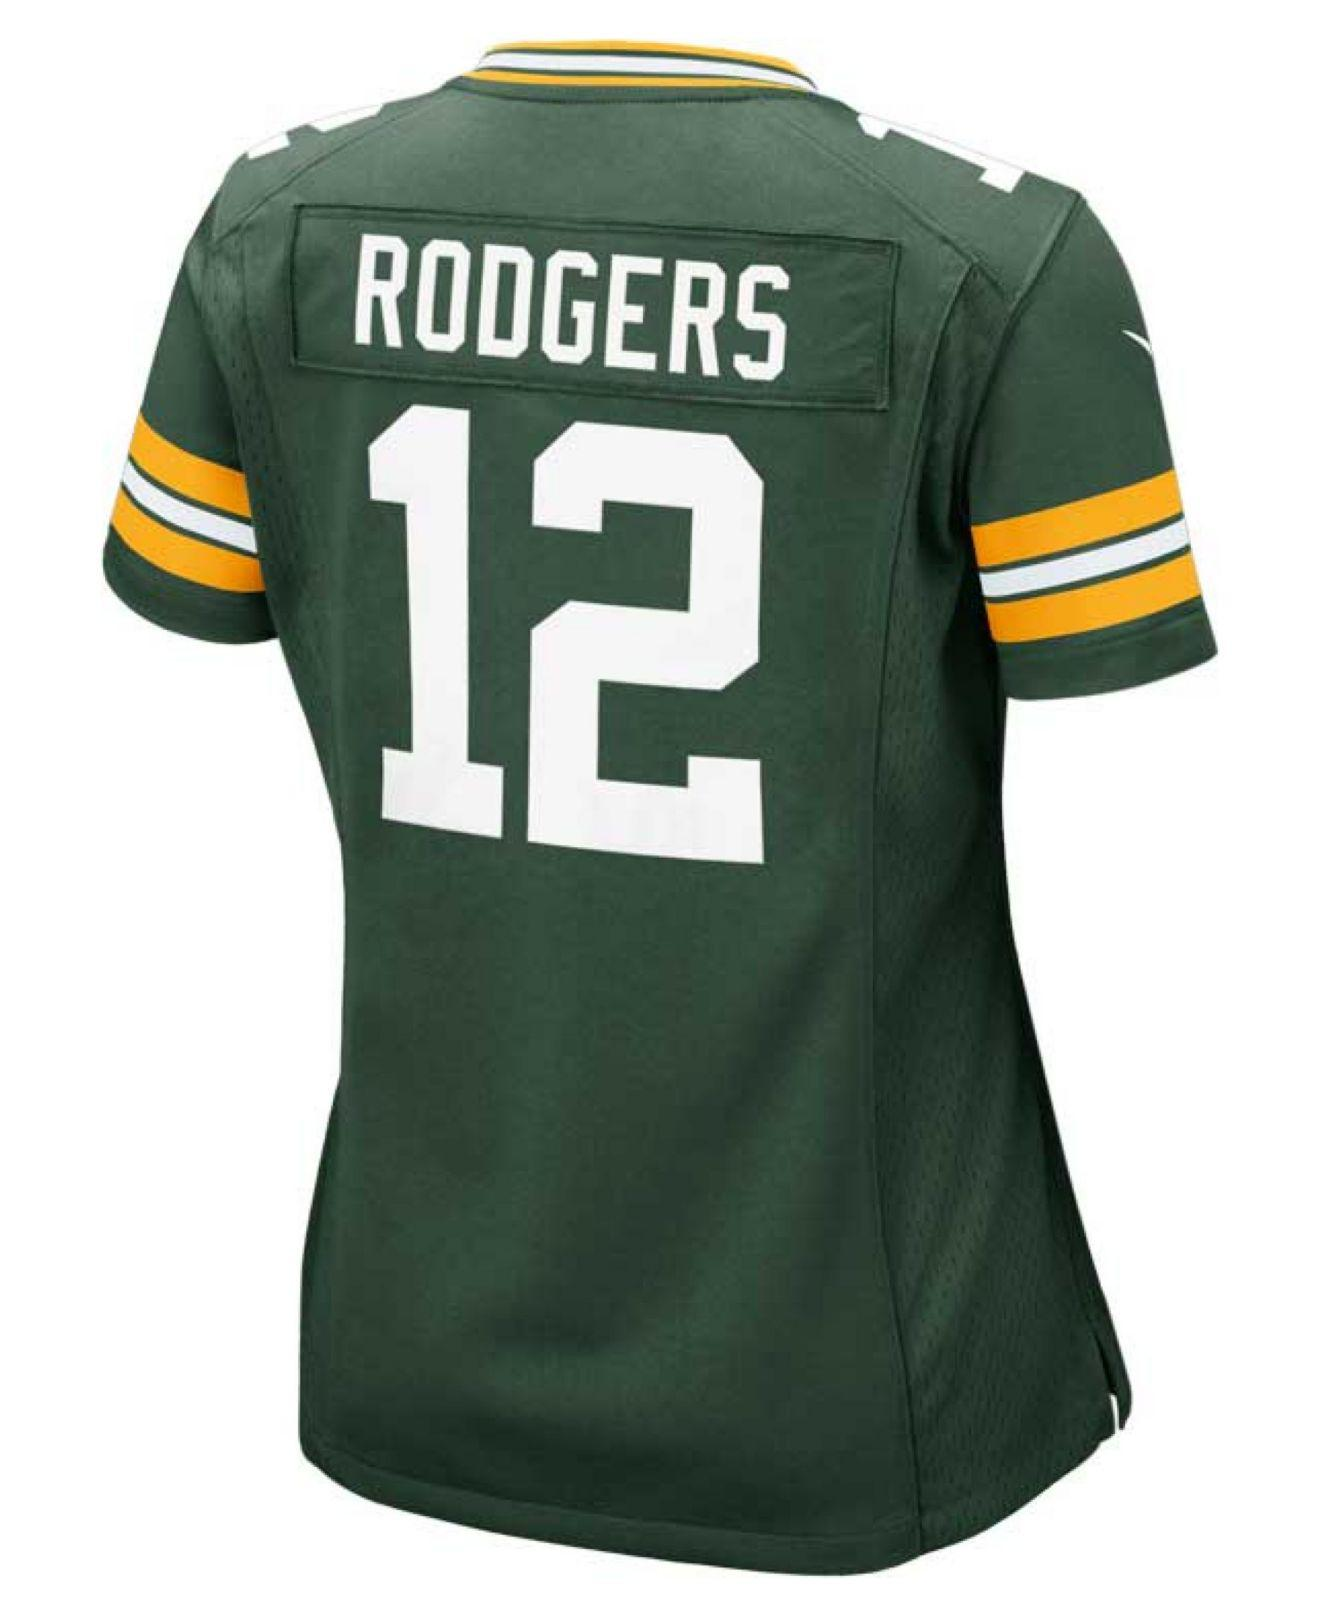 Lyst - Nike Women s Aaron Rodgers Green Bay Packers Game Jersey in Green 6c361a5e4